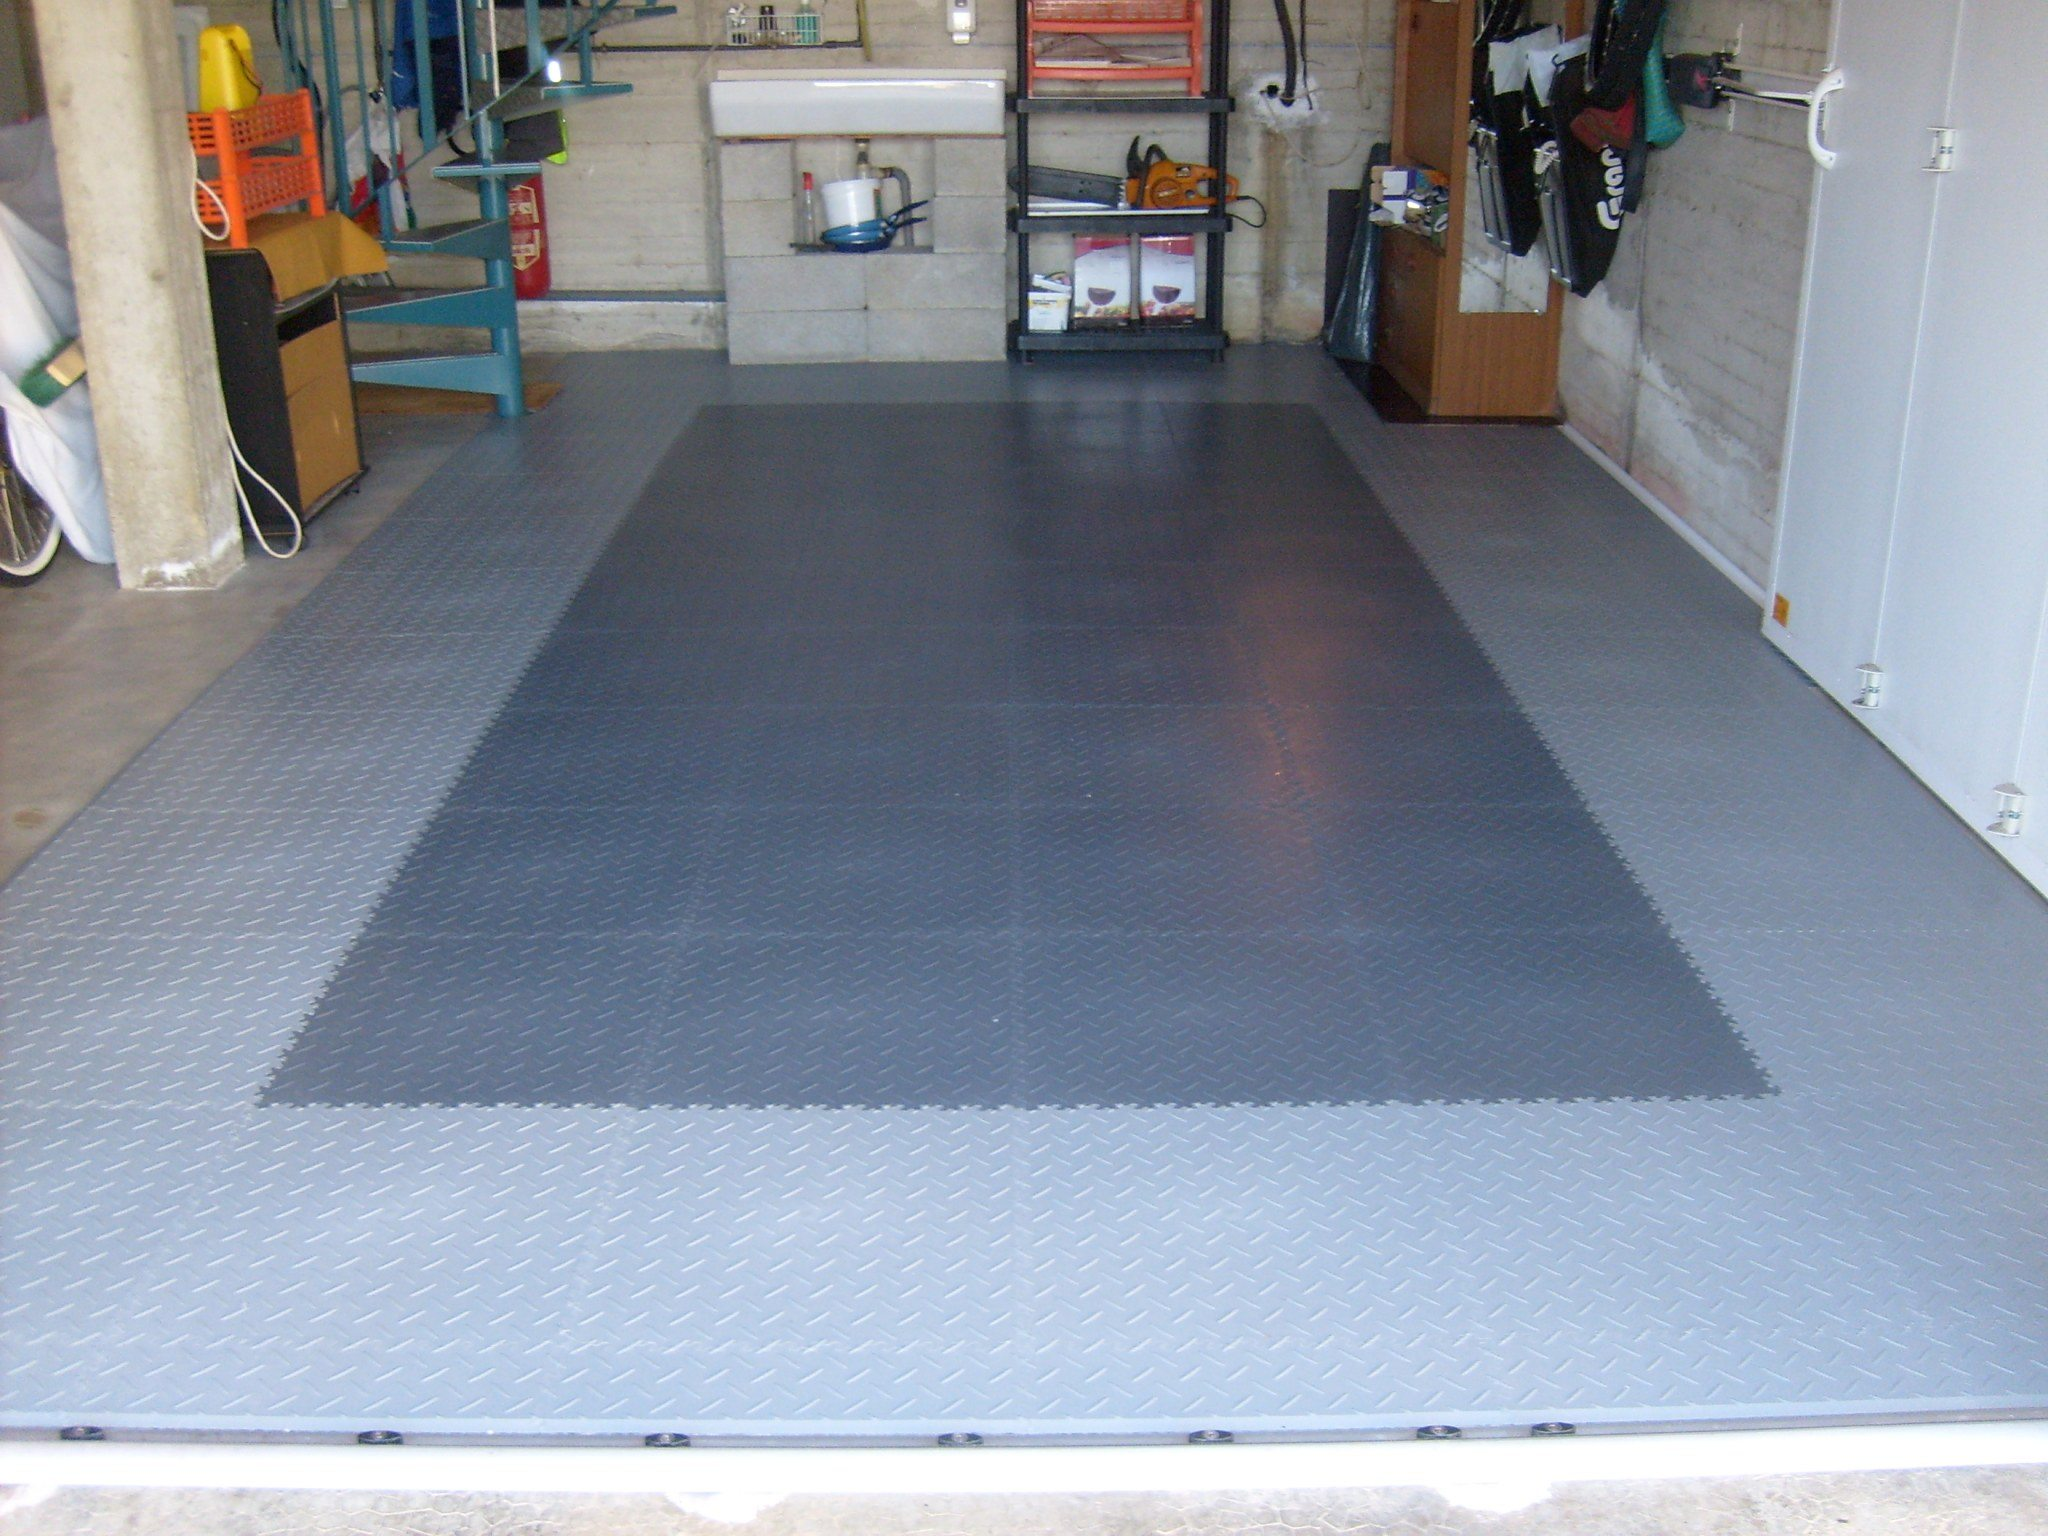 Bricoflor a versatile flooring alternative for the garage for Flooring alternatives